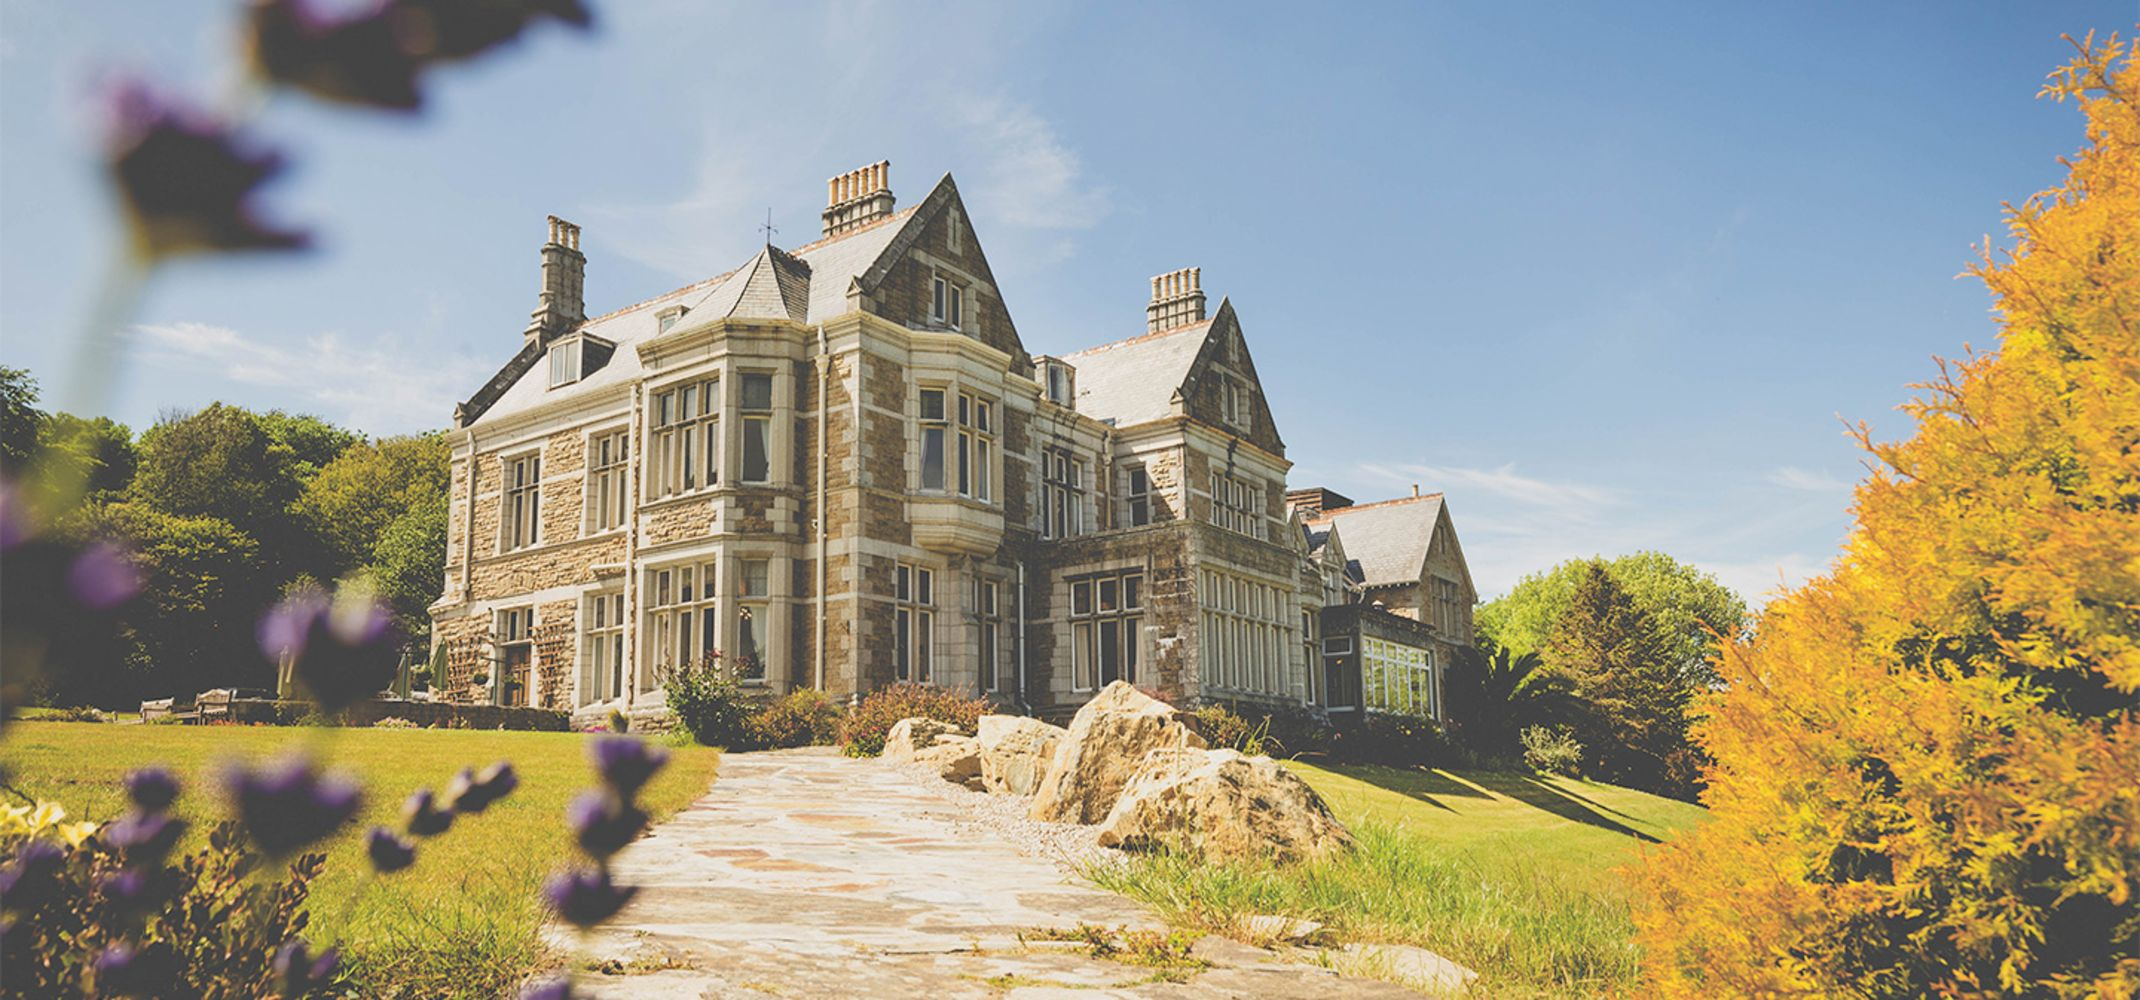 Entire Contents of Treloyhan Manor Hotel  Carbis Bay Cornwall - Guest Rooms, Public Spaces, Restaurant Kitchens and Bar